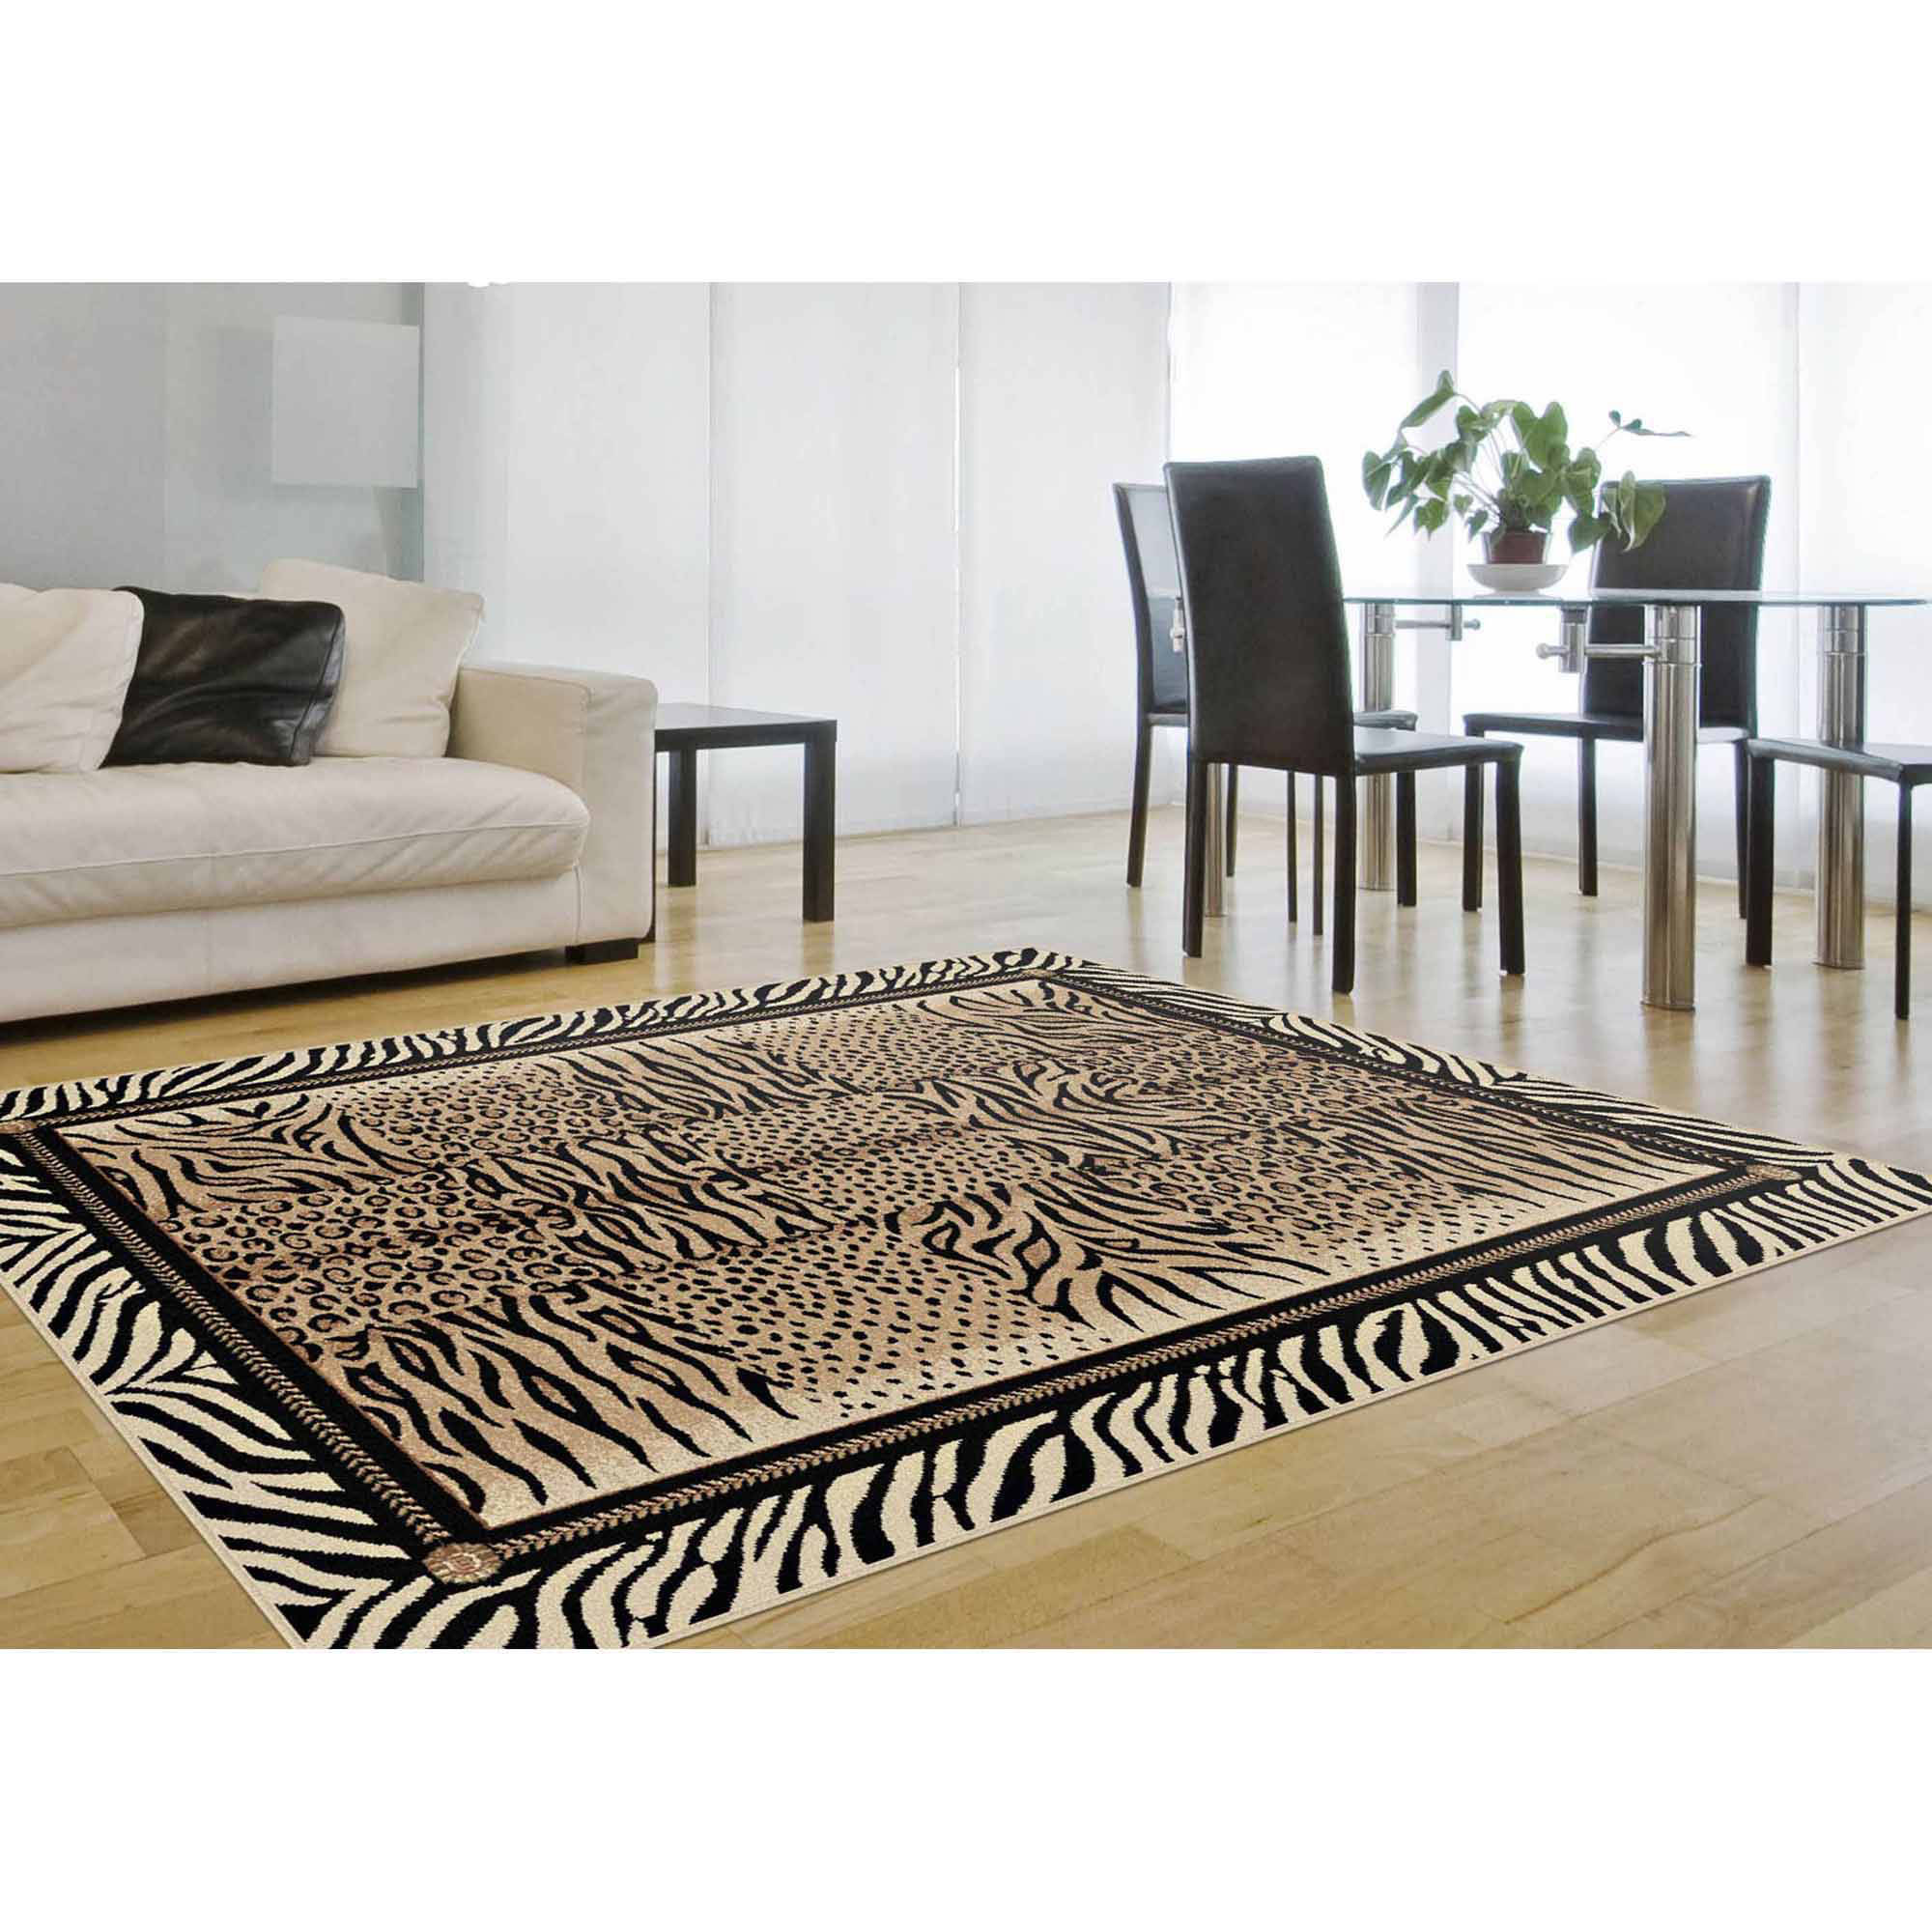 Bliss Rugs Serena Contemporary Area Rug